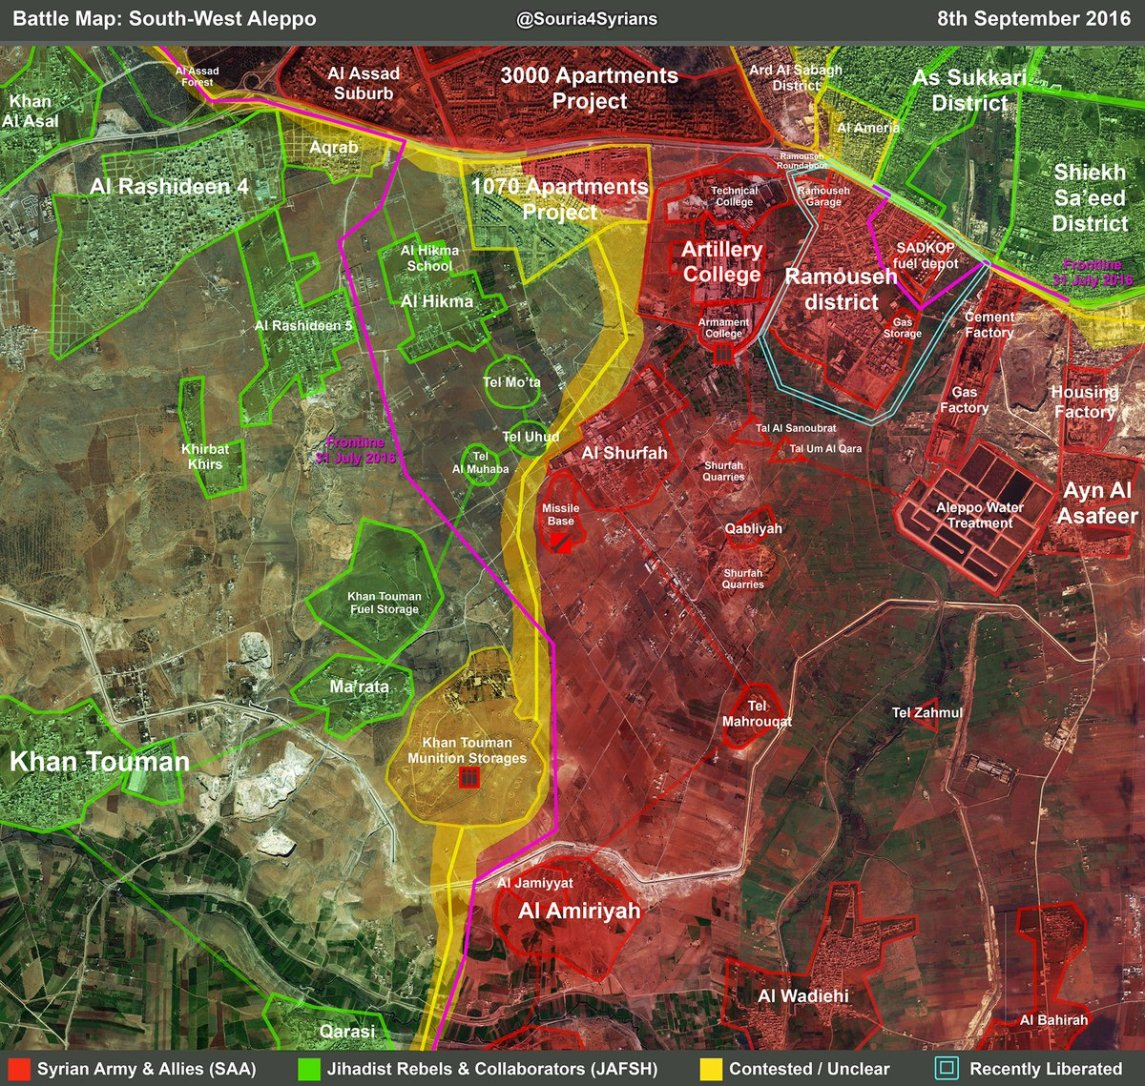 Map shows the re-encirclement of east Aleppo with the SAA seizure of the entire Ramouseh district. , the Ramouseh-Khan Touman road was never really functional as a supply line as it fell within the range of the Syrian artillery. Now it is physically cut.